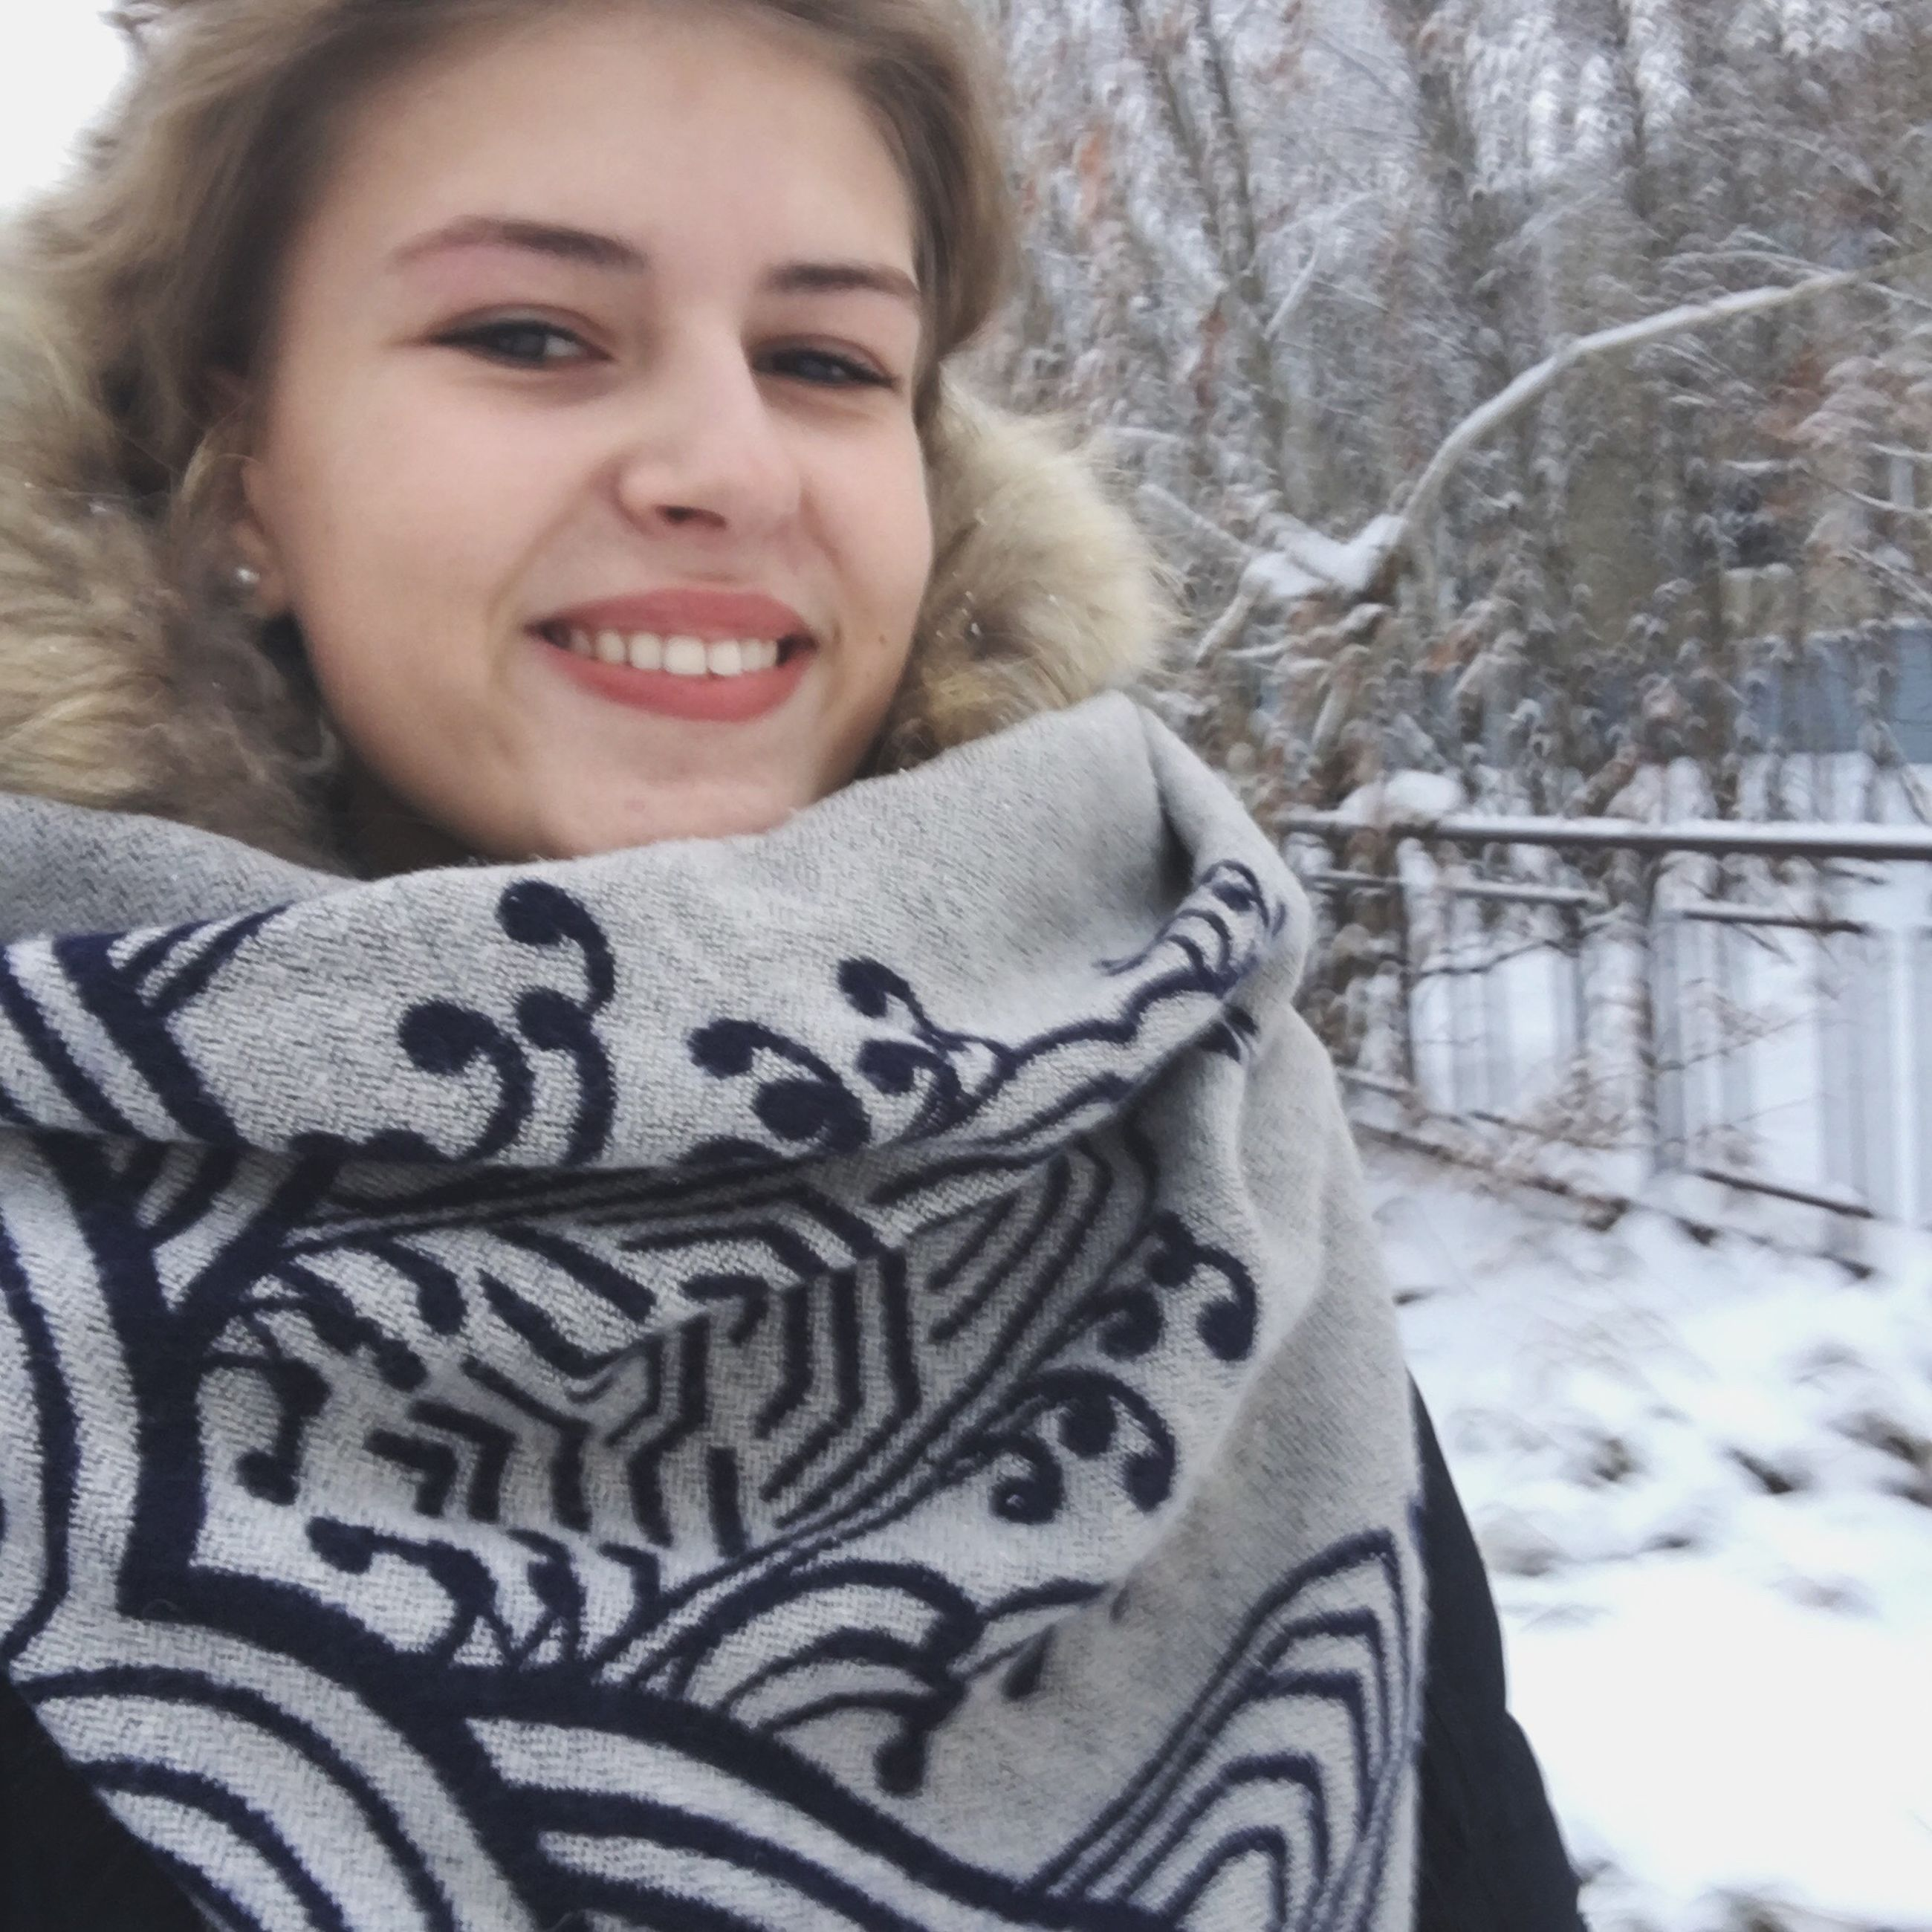 winter, cold temperature, snow, real people, one person, weather, smiling, young women, warm clothing, young adult, leisure activity, lifestyles, day, happiness, tree, outdoors, nature, women, cheerful, beauty in nature, beautiful woman, close-up